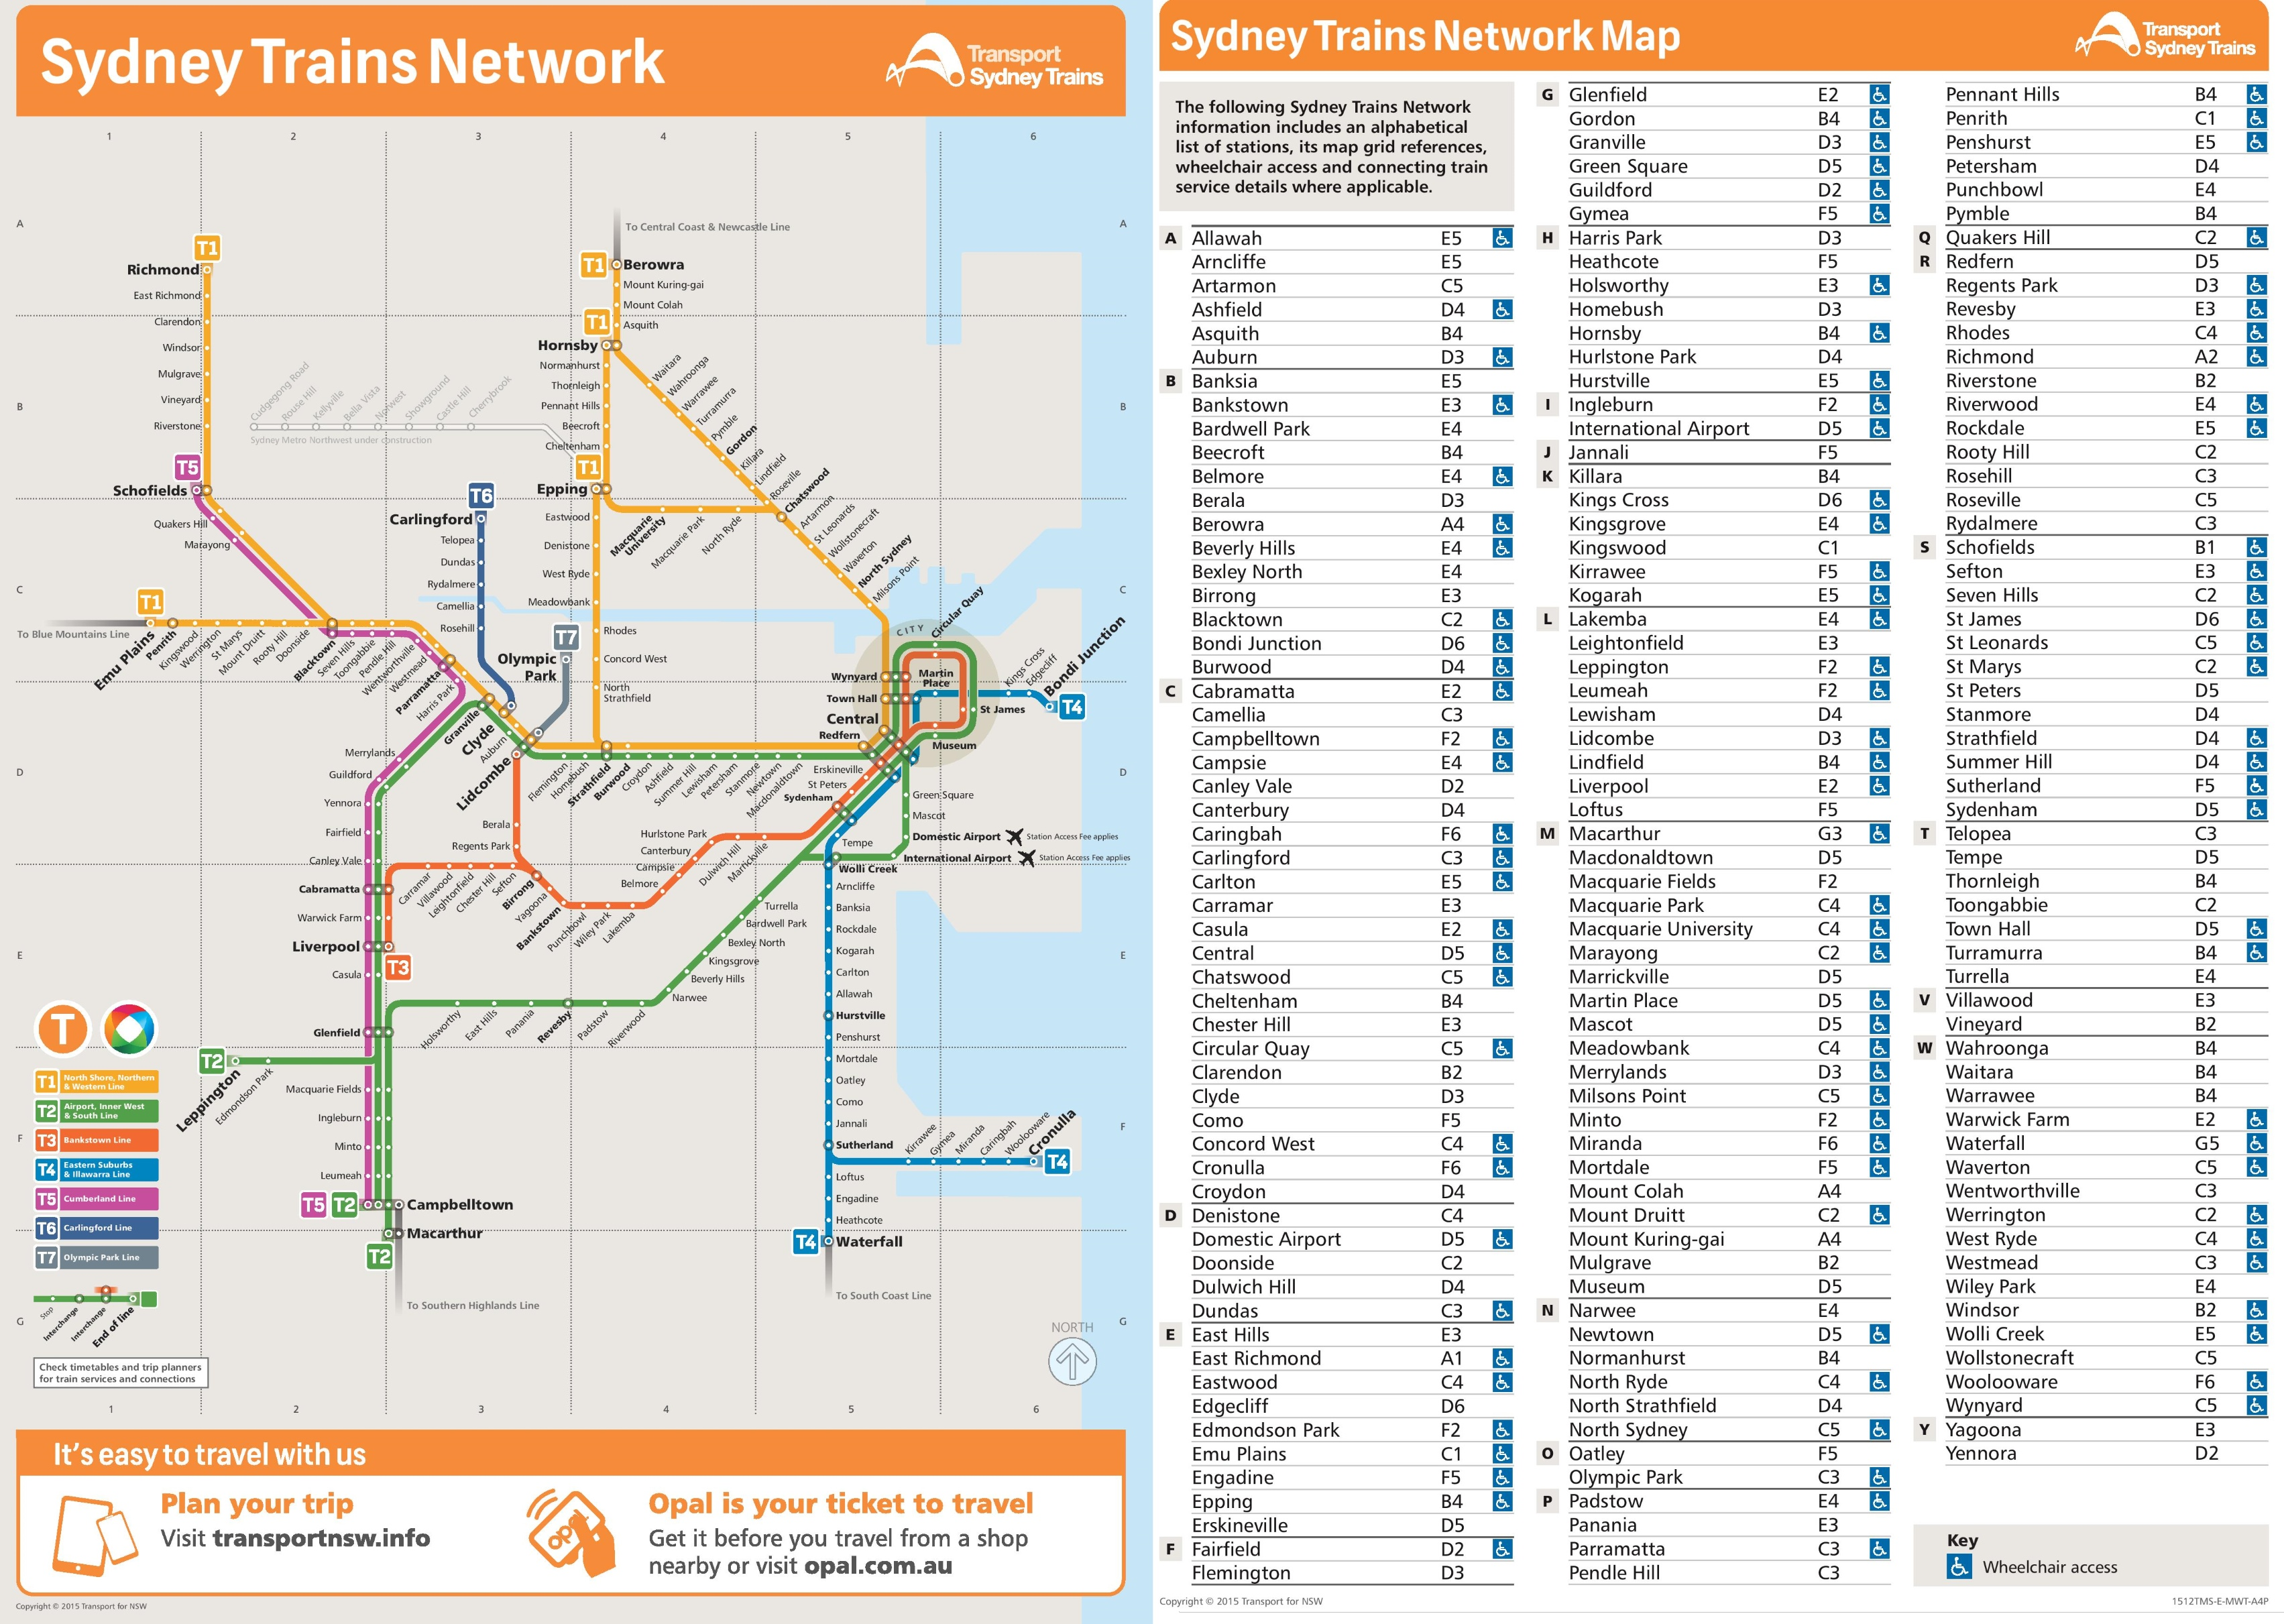 Sydney trains network map